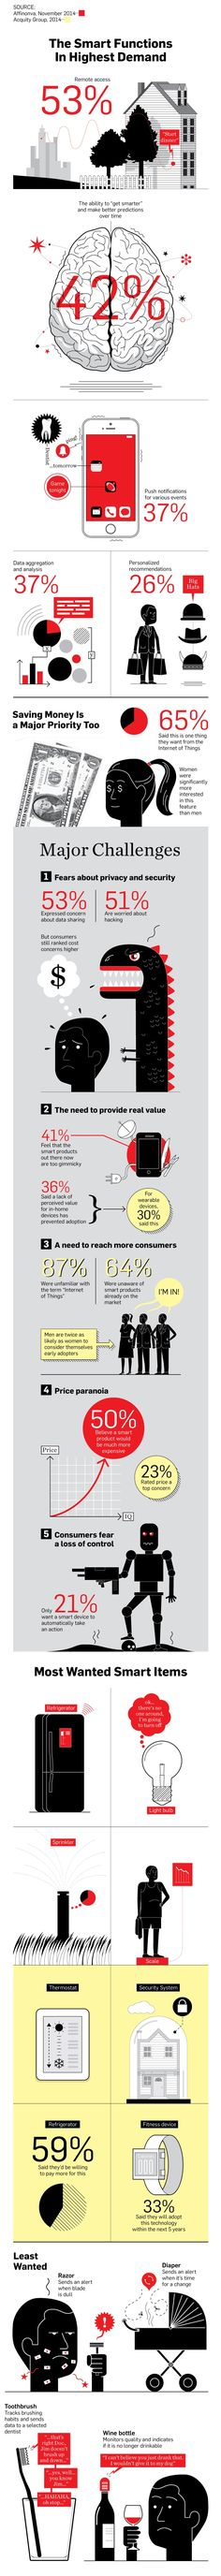 "Why Consumers Have Failed to Adopt the Internet of Things | ""Brands need to address consumer fears and concerns."" 